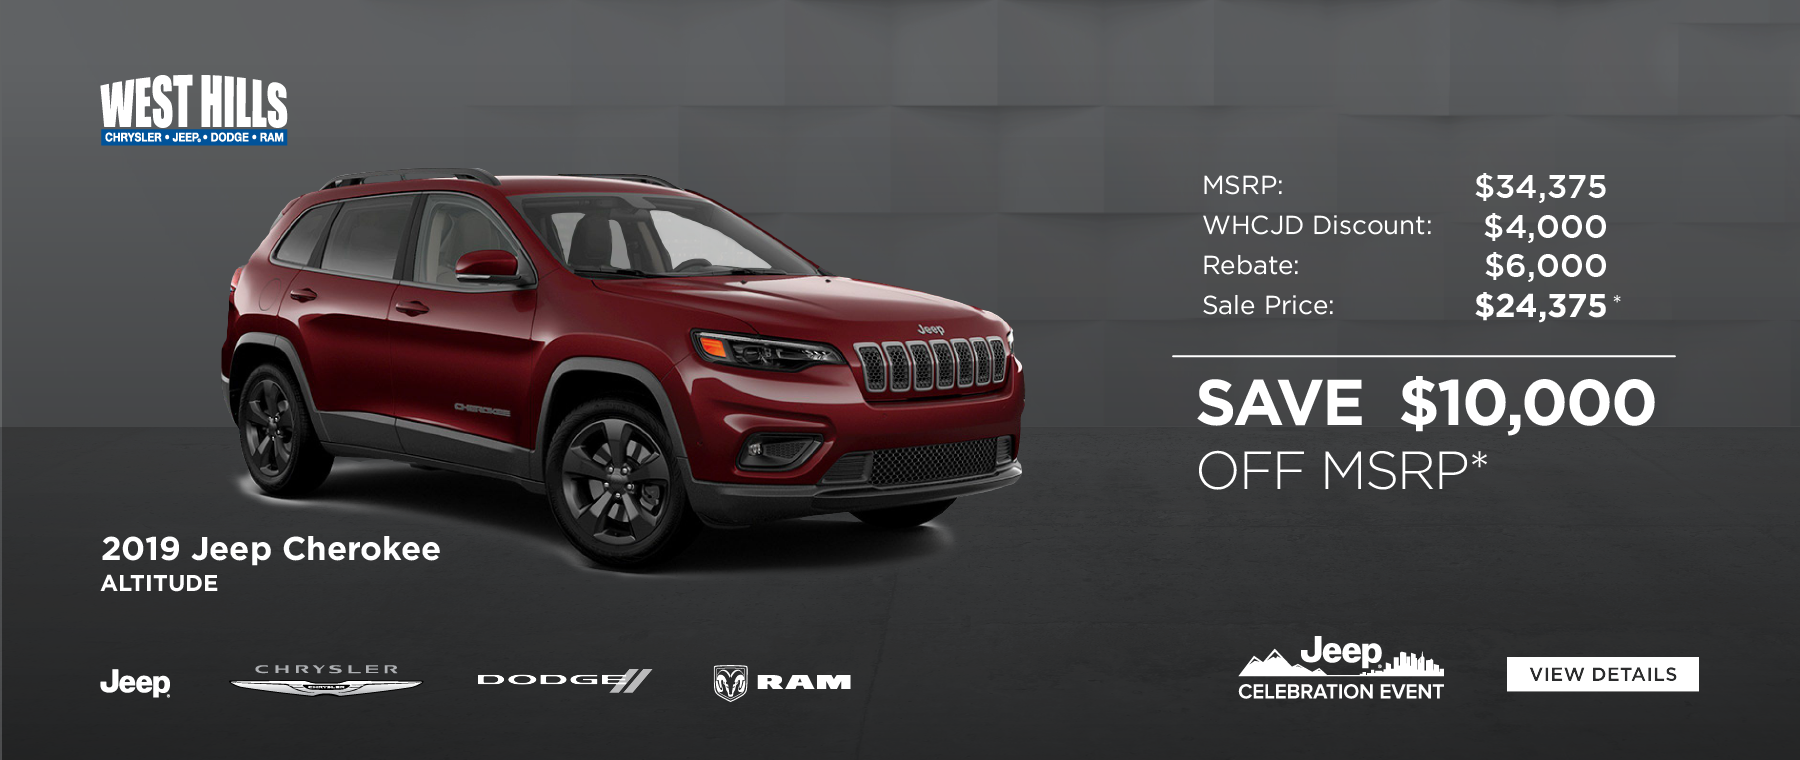 2019 Jeep Cherokee Altitude  MSRP: $34,375 WHCJDR Discount: $4,000 Rebate: $6,000 Sale Price: $24,375* SAVE $10,000 OFF MSRP*    * Offer valid on 2019 Jeep Cherokee Altitude. VIN: 1C4PJMLN3KD388668. MSRP: $34,375. WHCJDR Discount: $4,000. Rebate: $6,000. Sale Price: $24,375. Based on approval of program ID 70CK1,41CK83,44CKB3,43CKK3, 43CKK4, WECKA. Subject to credit approval. Down payment and monthly payment may vary. Excludes taxes, tags, registration and title, insurance and dealer charges. A negotiable dealer documentary service fee of up to $150 may be added to the sale price or capitalized cost. Exp. 6/30/2019.